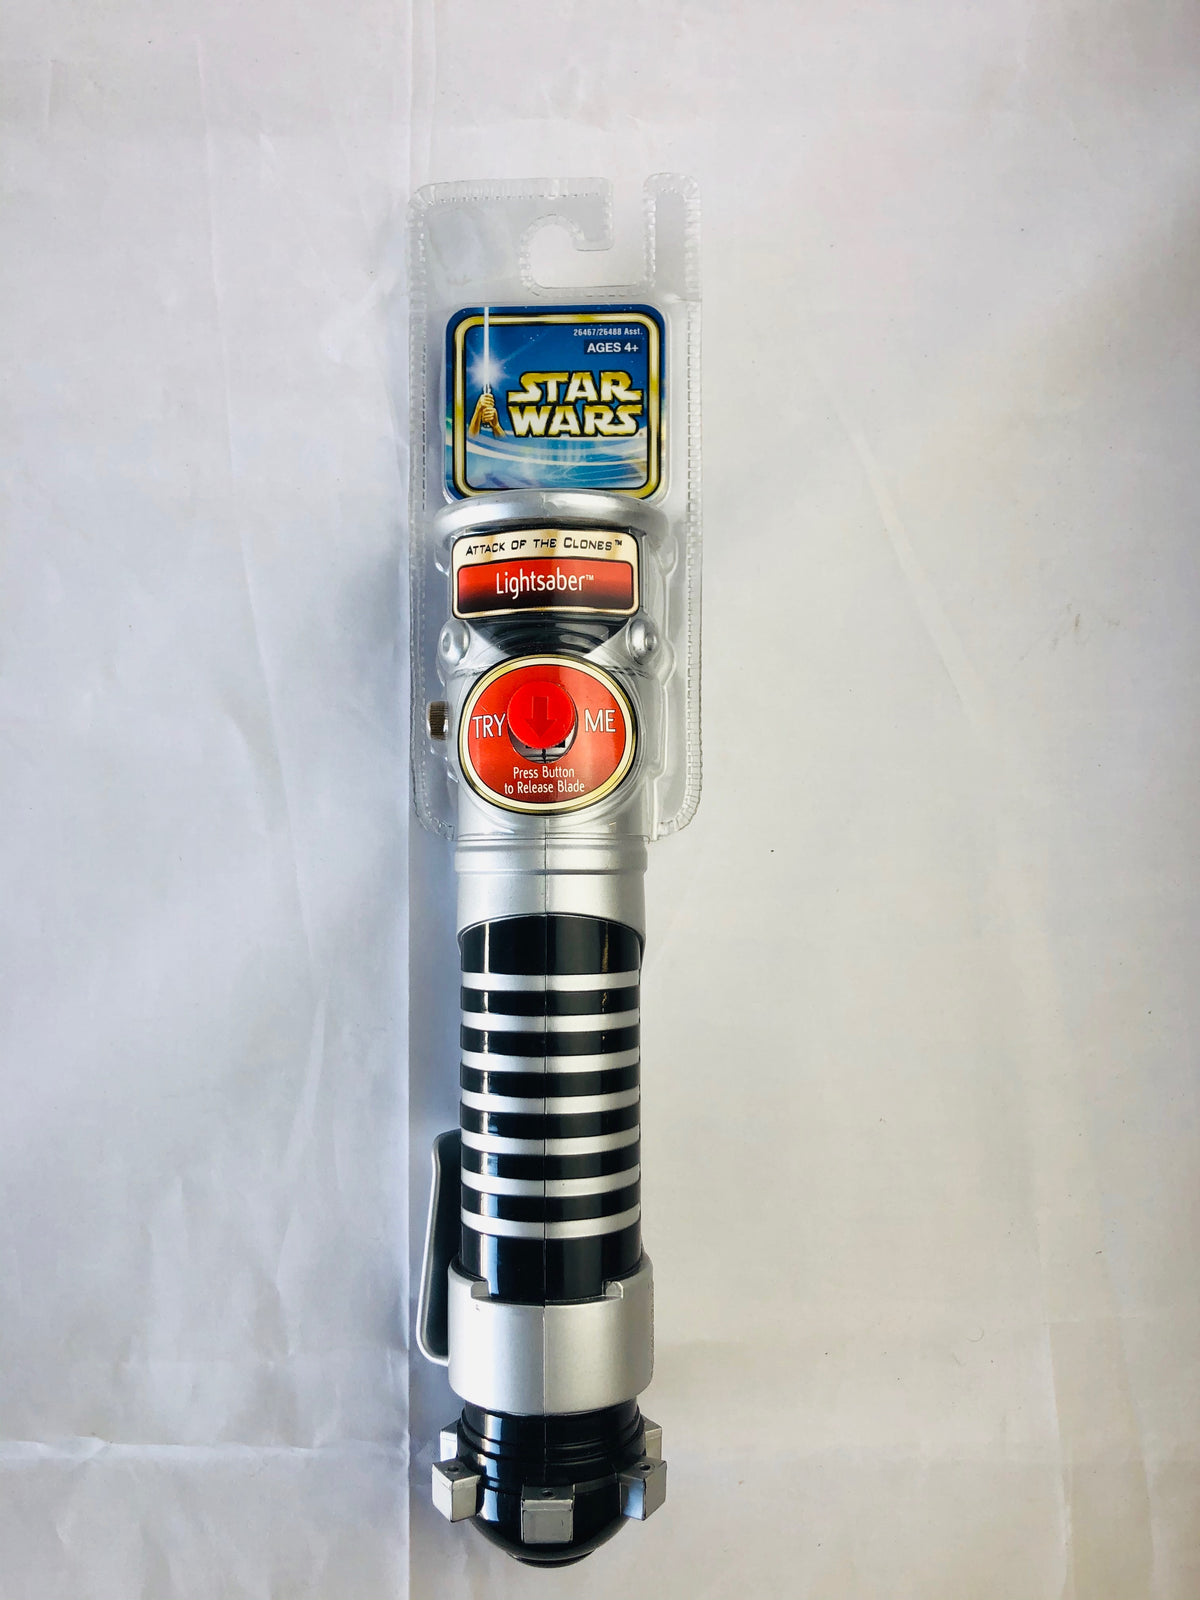 Star Wars Attack of The Clones - Lightsaber